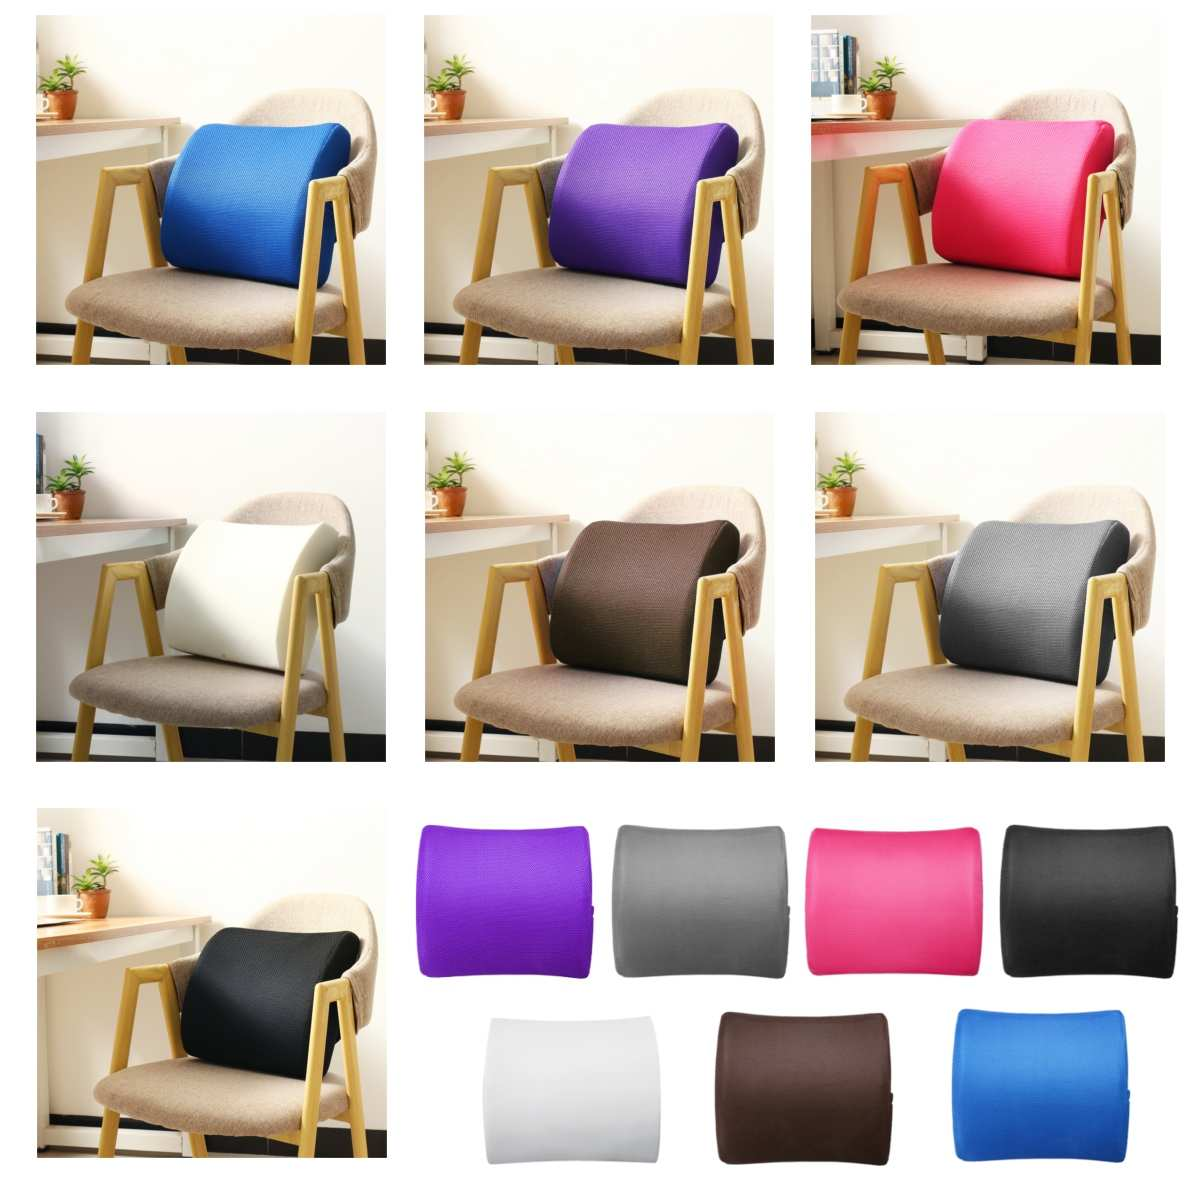 6 Color Lumbar Pillows Made Of Soft Foam For Car Seat To Support And Relieve Back Pain 4